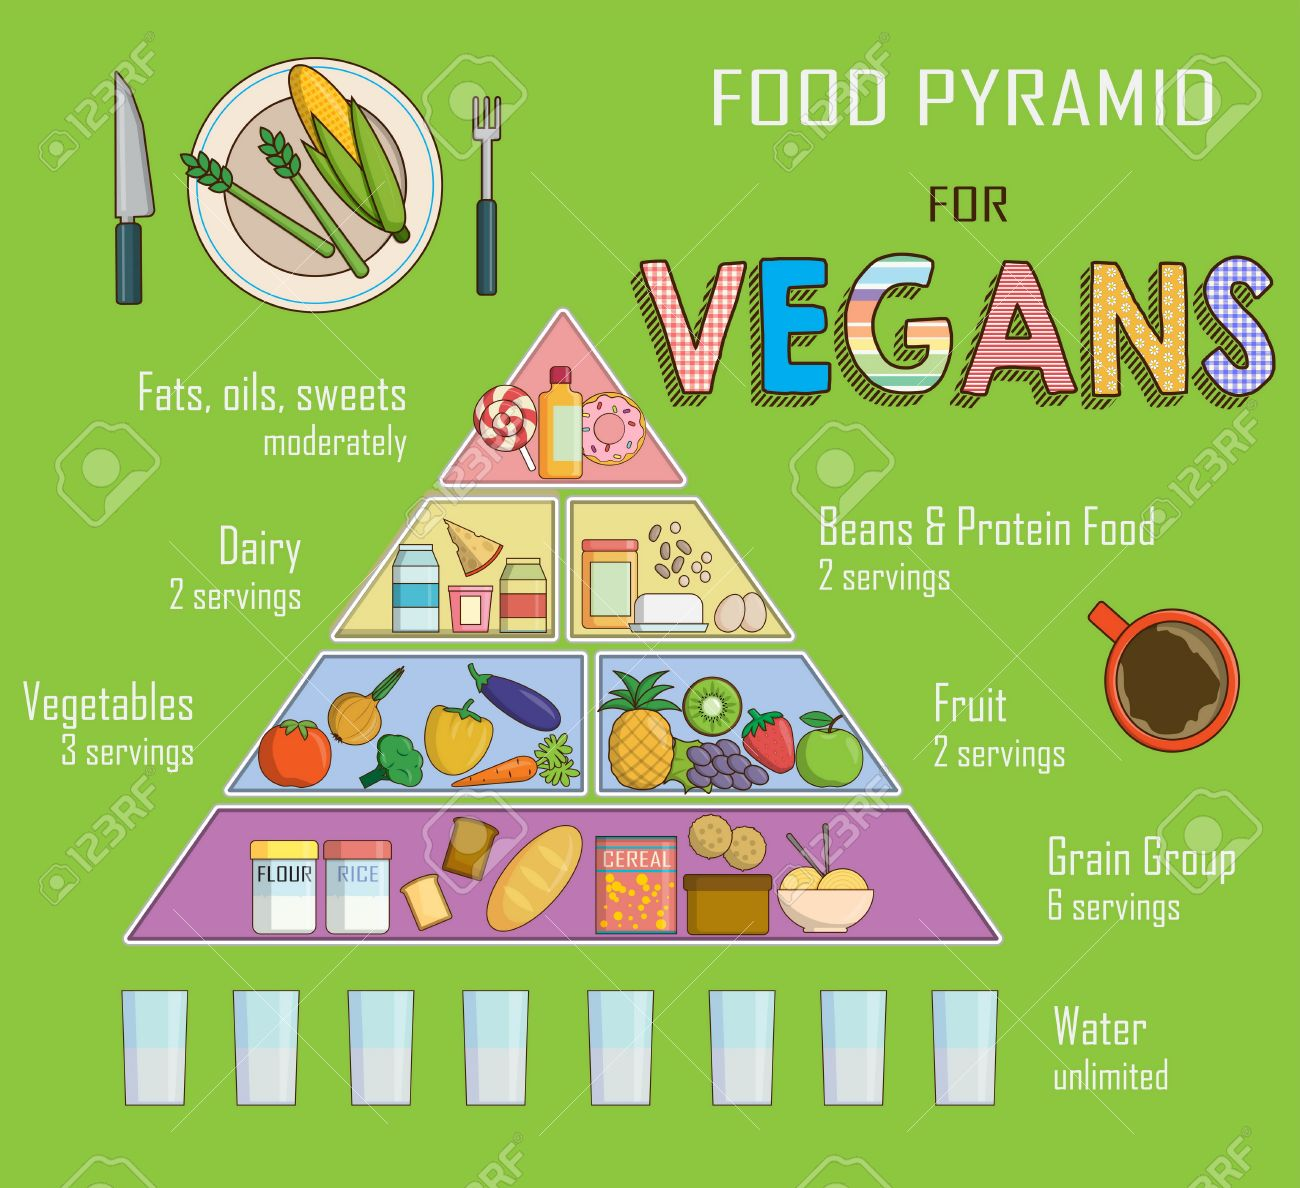 Infographic chart, illustration of a food pyramid for vegetarian